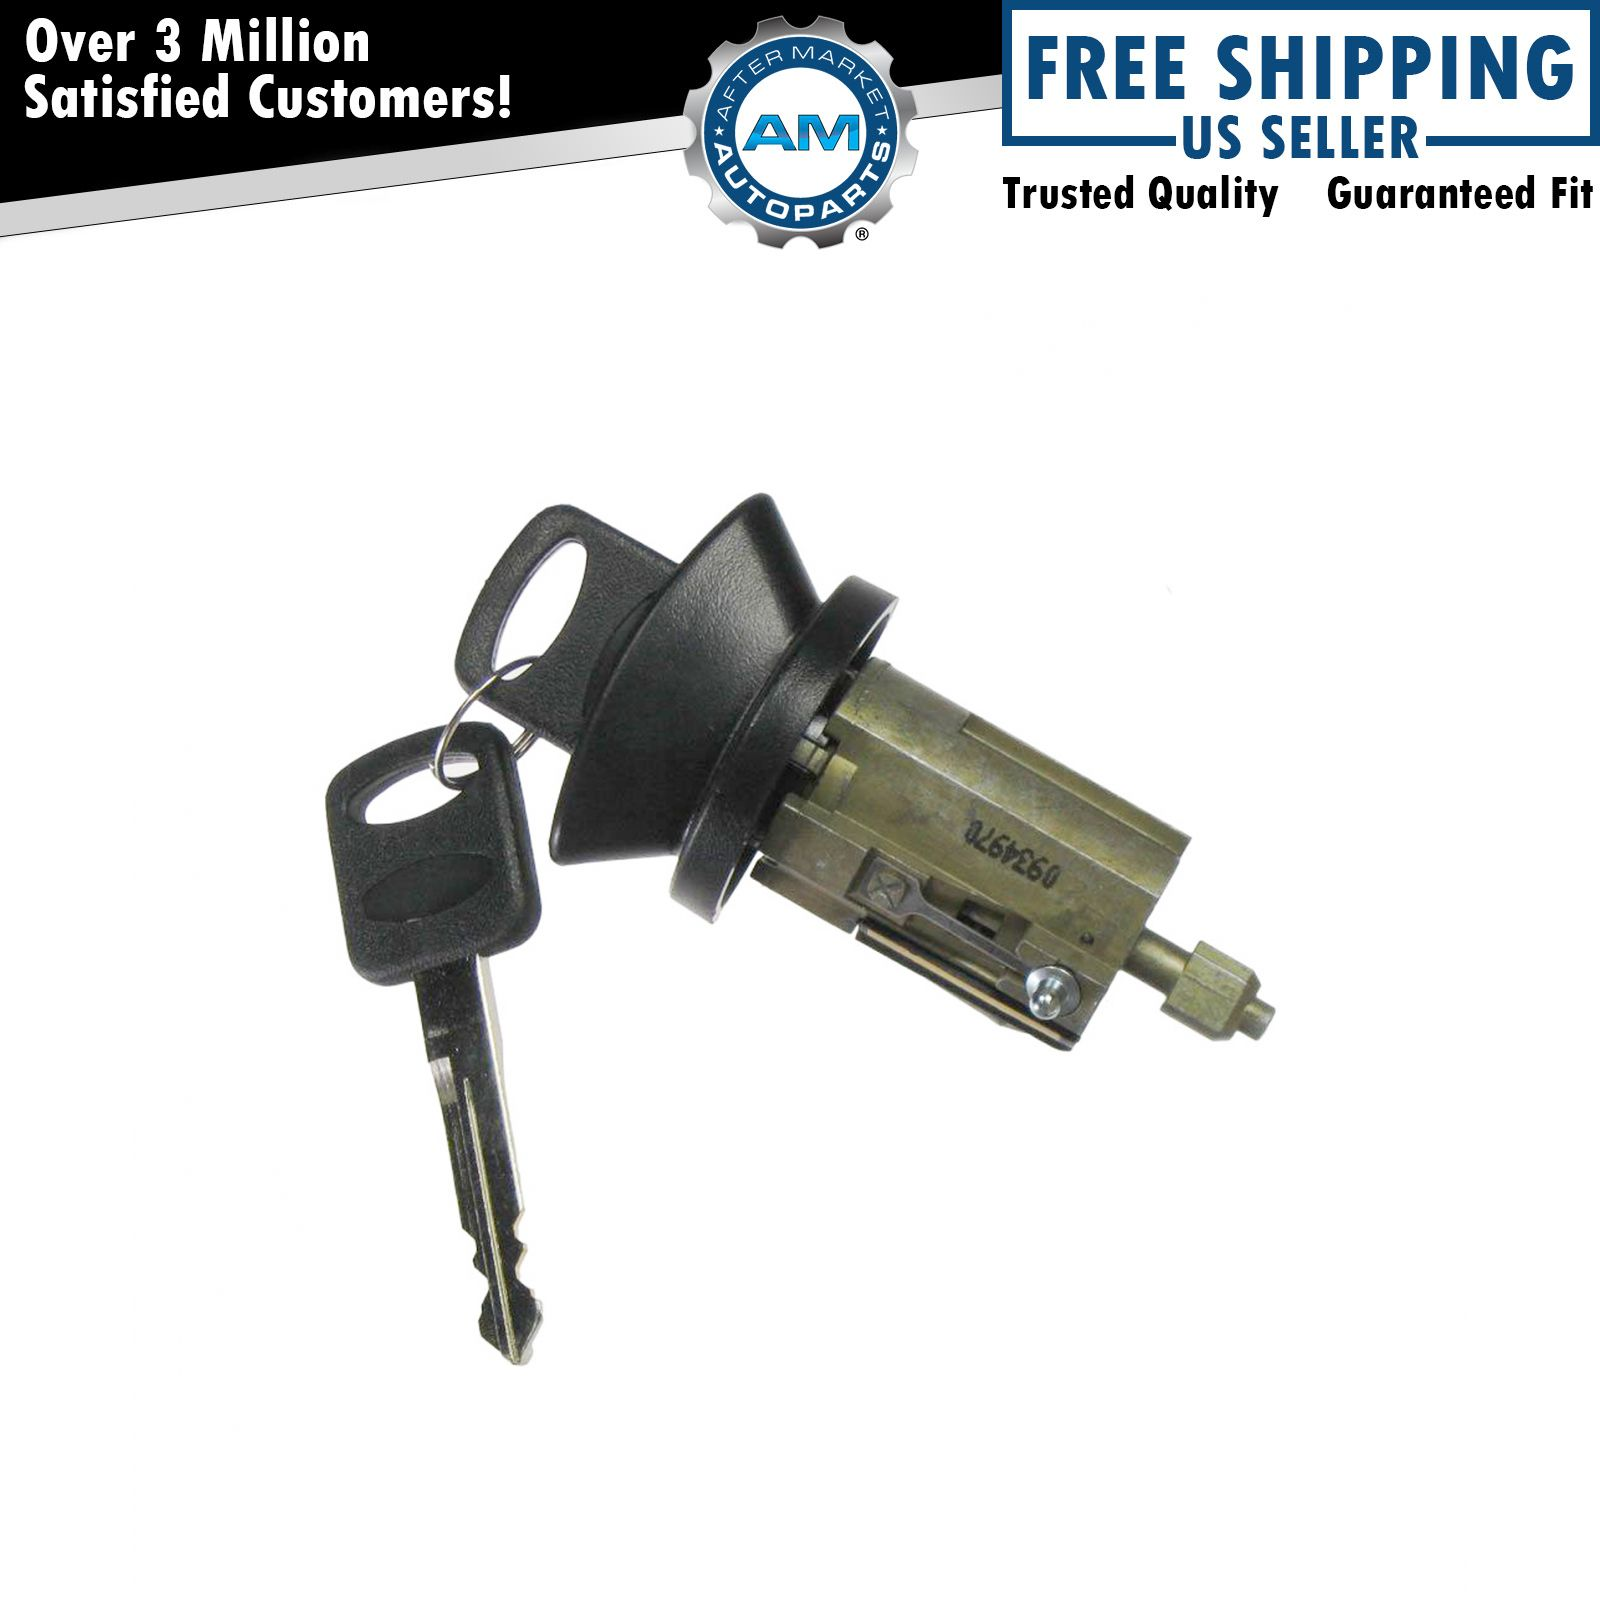 Ignition Key Lock Cylinder for Mercury Ford Lincoln Pickup Truck